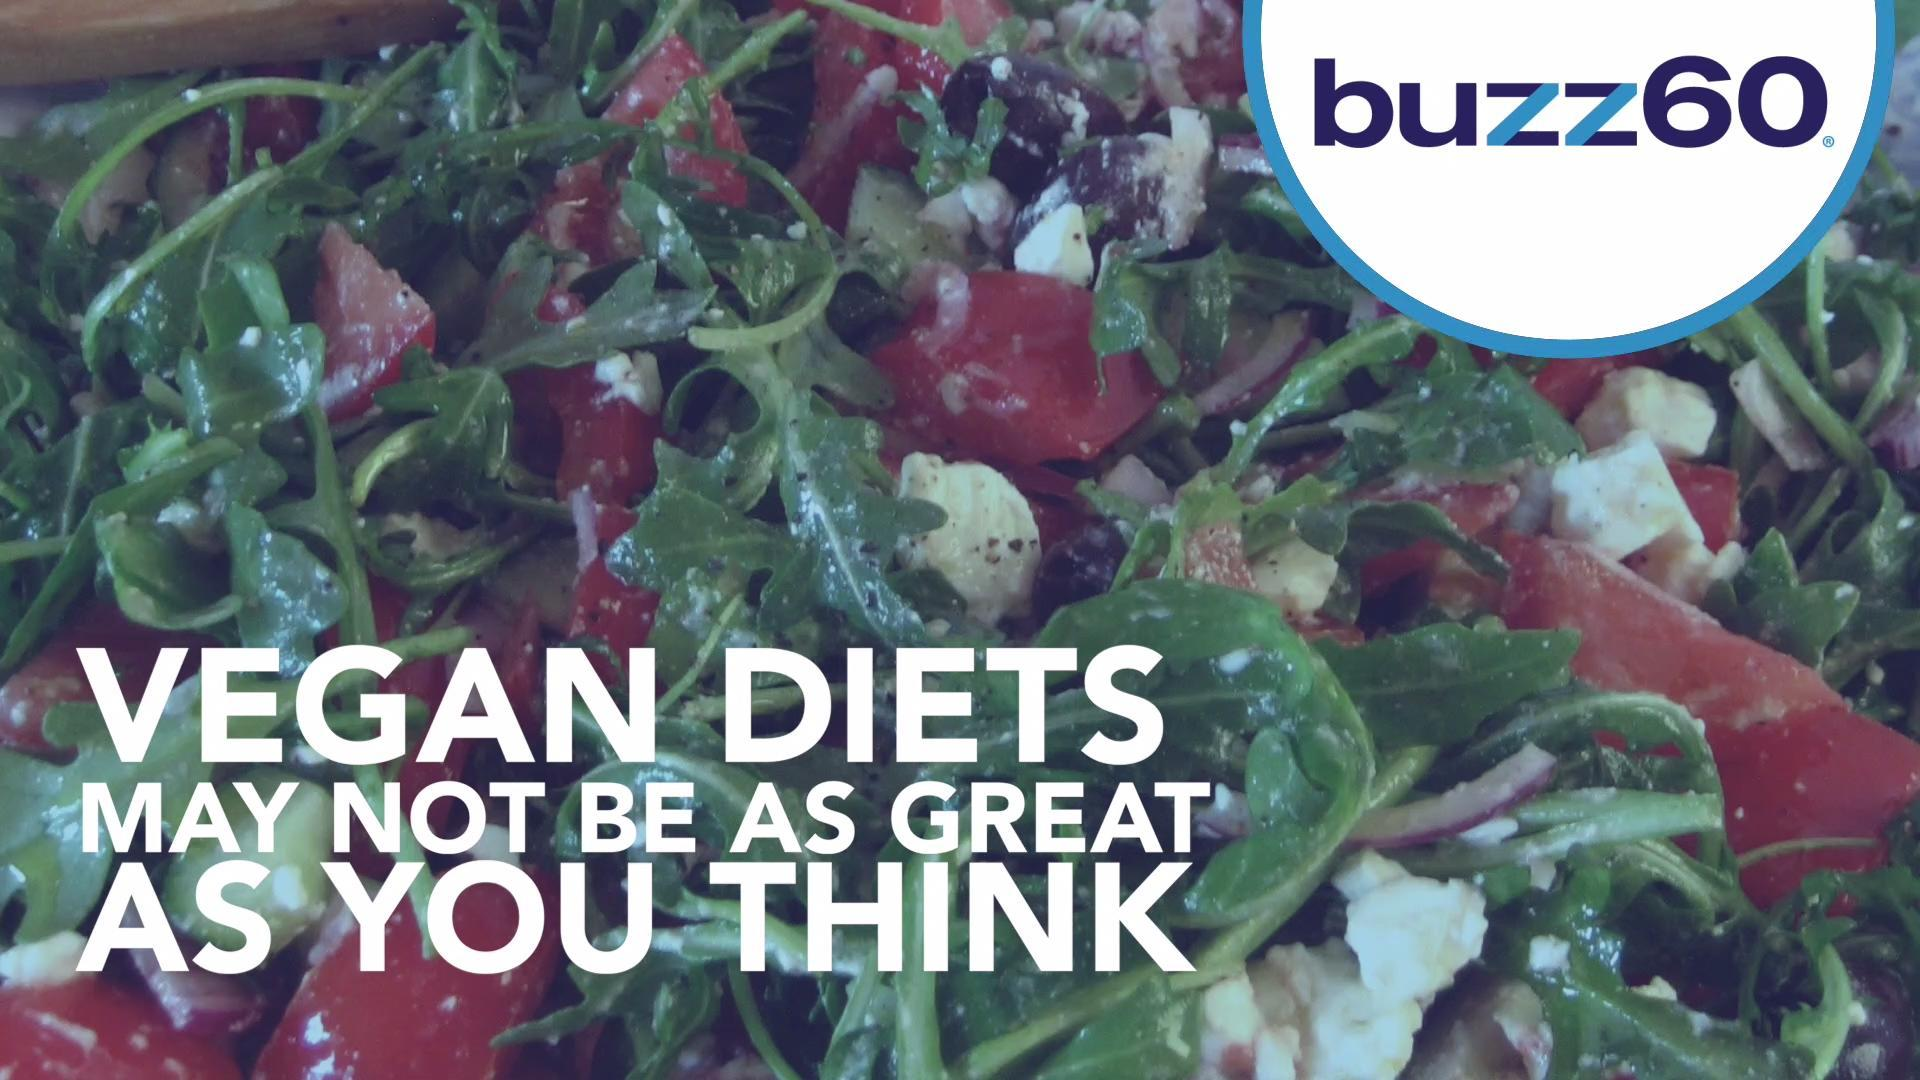 Vegan Diets May Not Be as Good as You Think